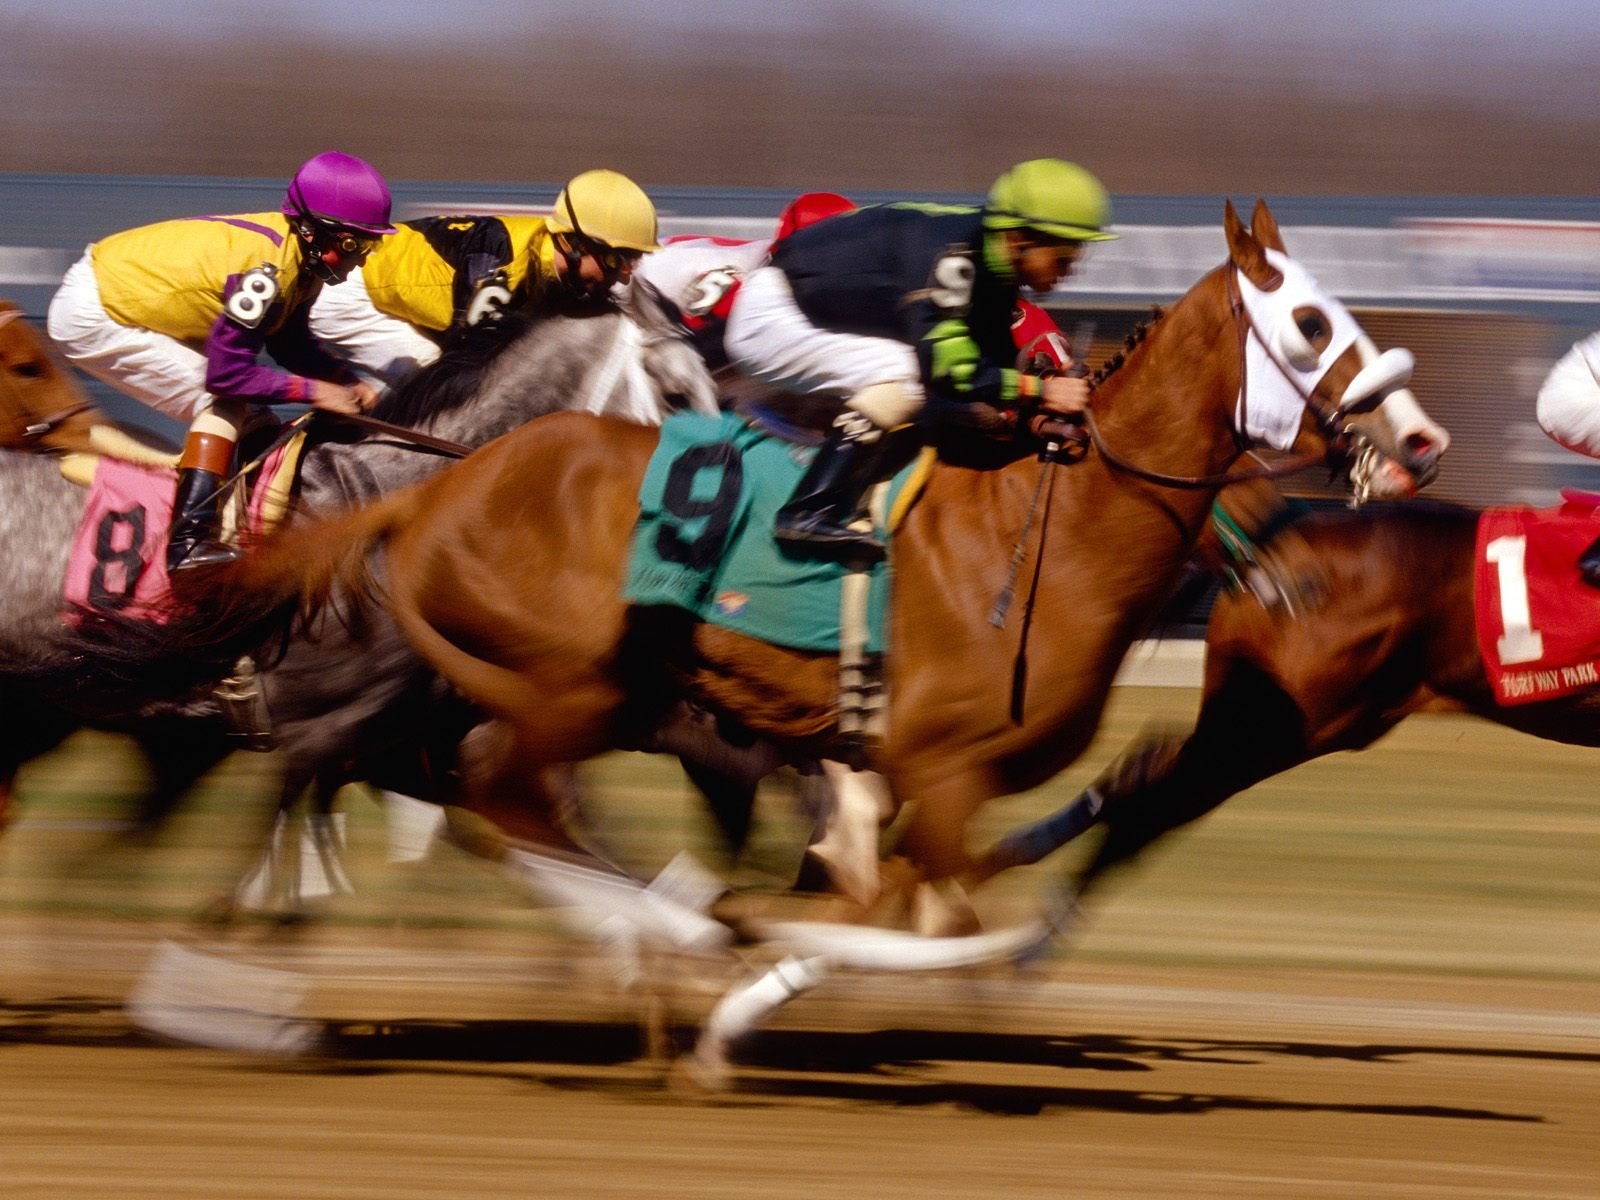 Arizona horse races wagering